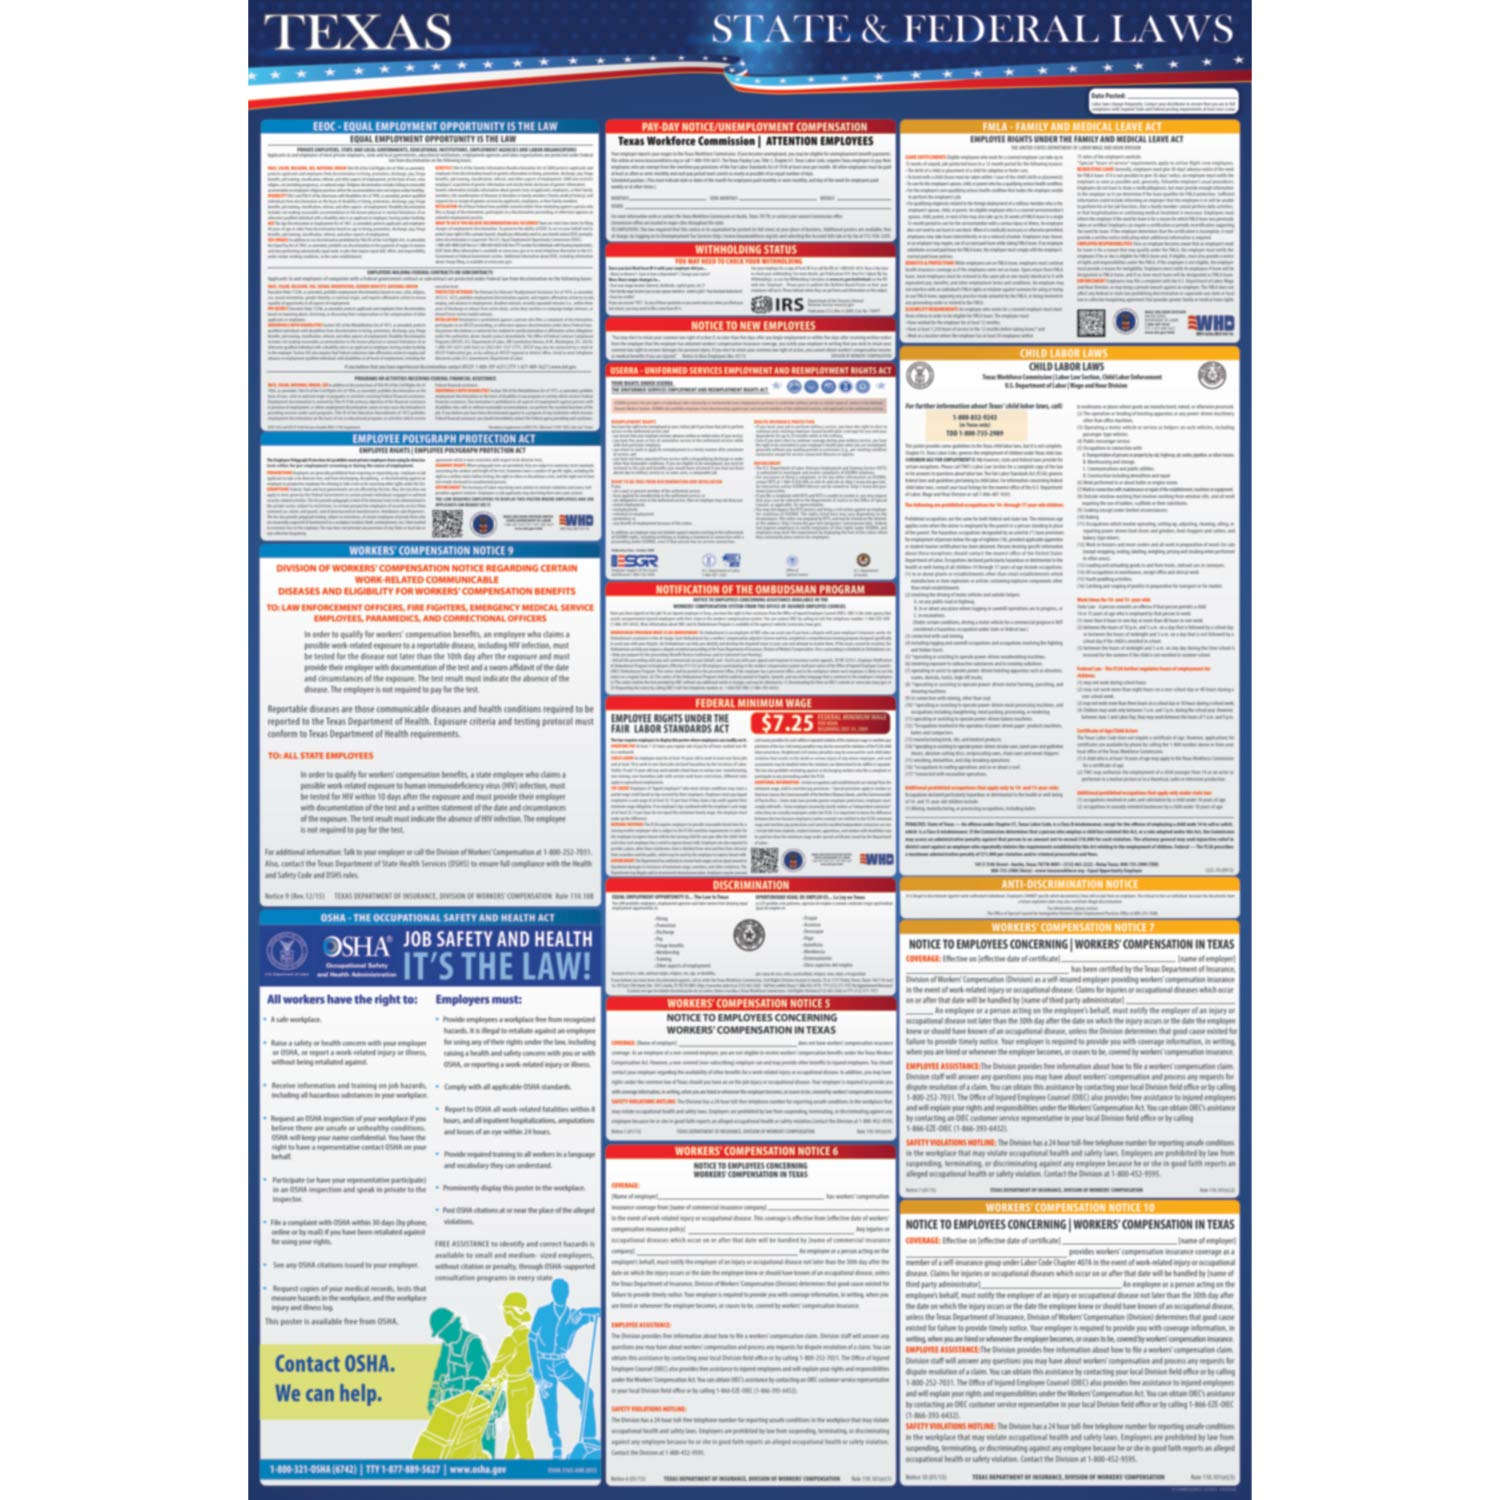 2019 Texas State and Federal Labor Laws Poster - OSHA Workplace Compliant  24